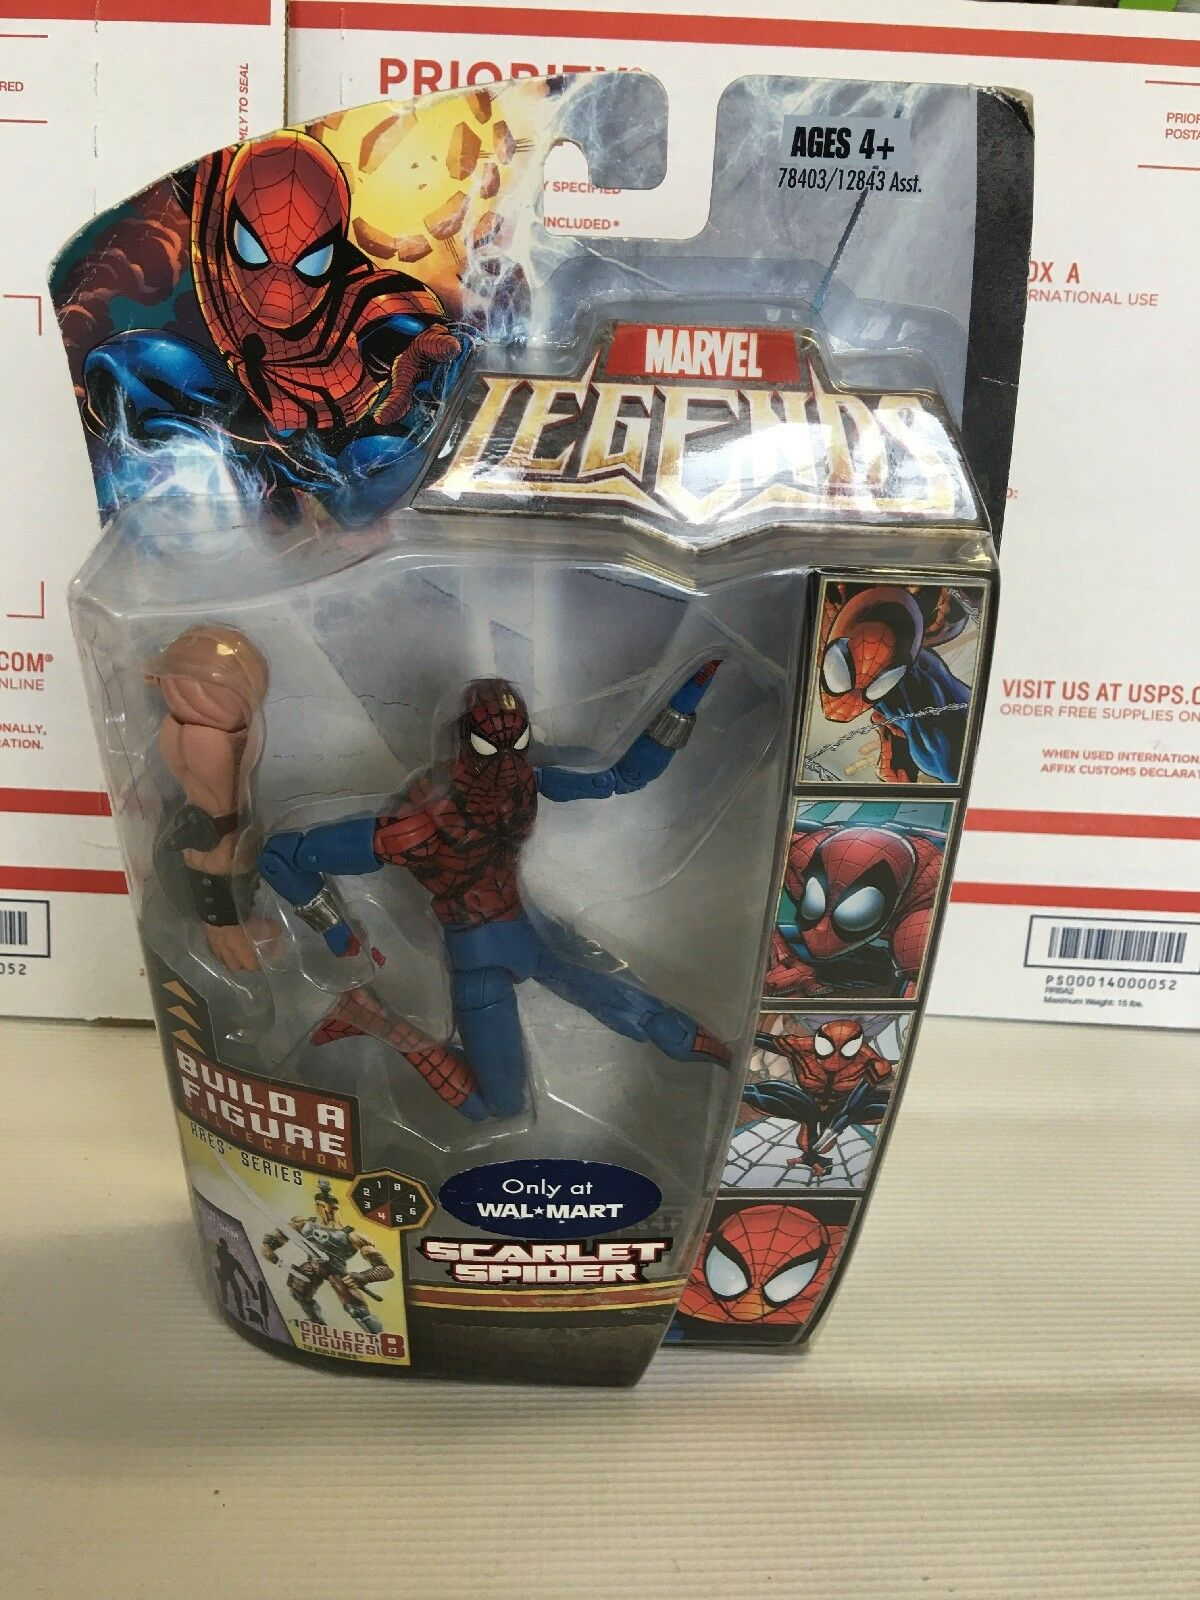 Marvel Legends Scarlet Spider 6  Figure (2008 Ares Baf Series)